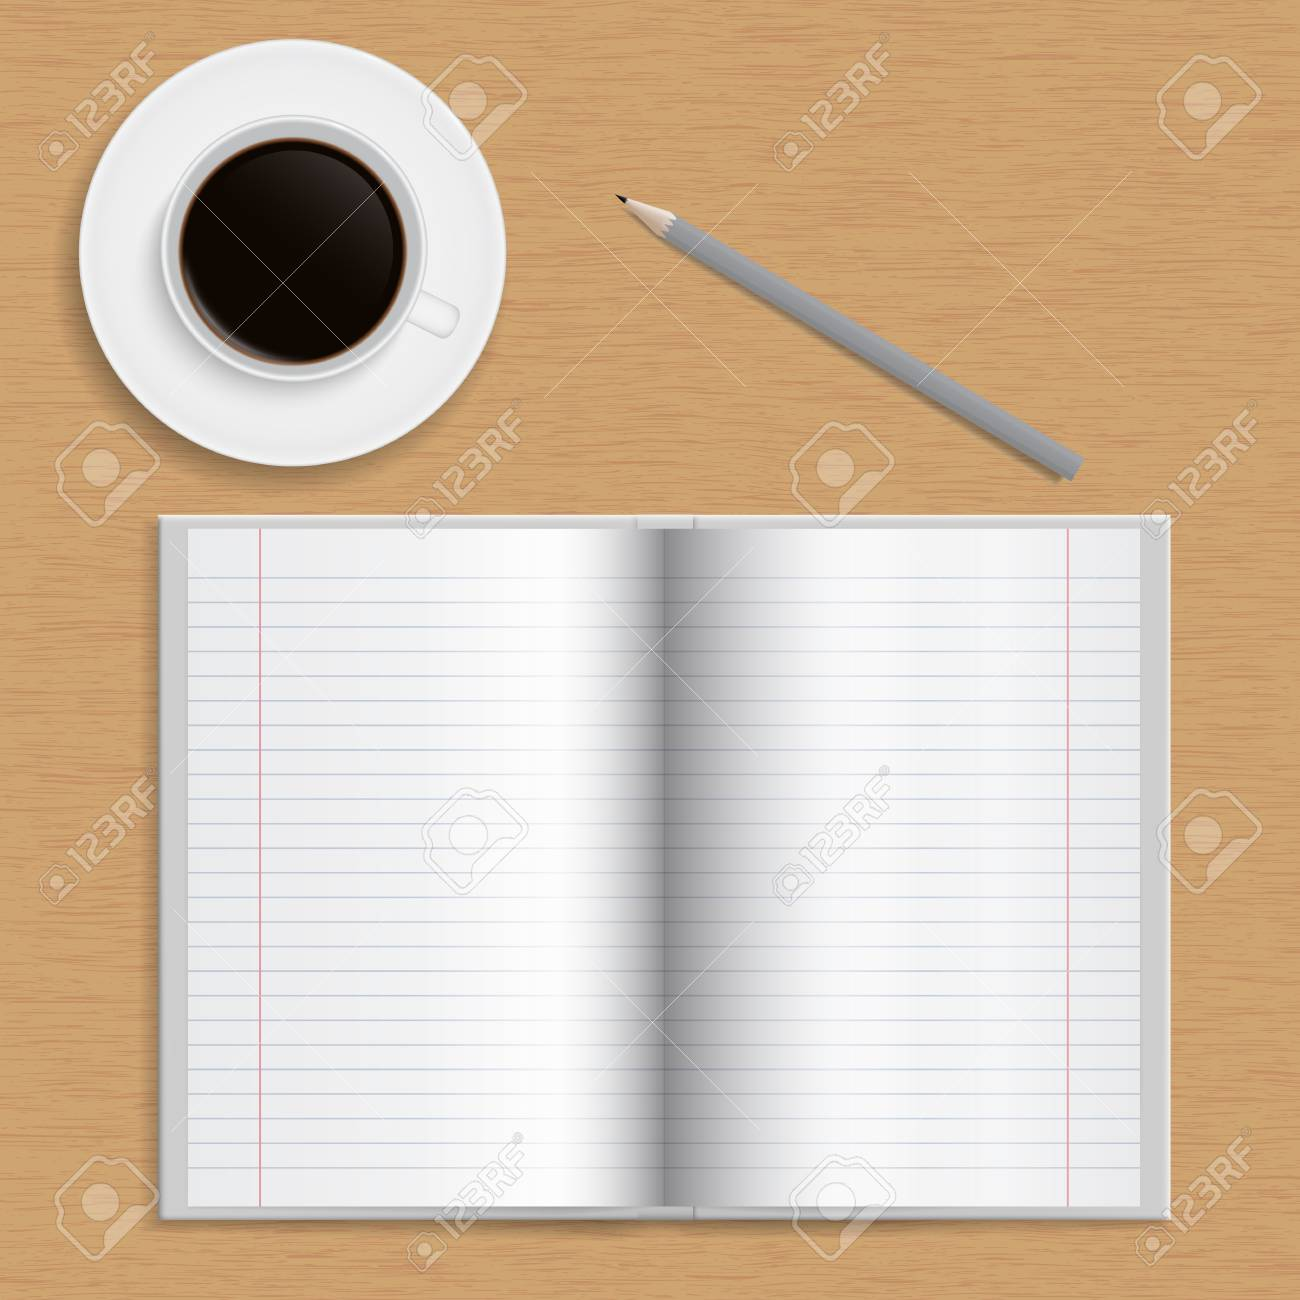 Realistic Open School Notebook With Lined Paper Pencil And A